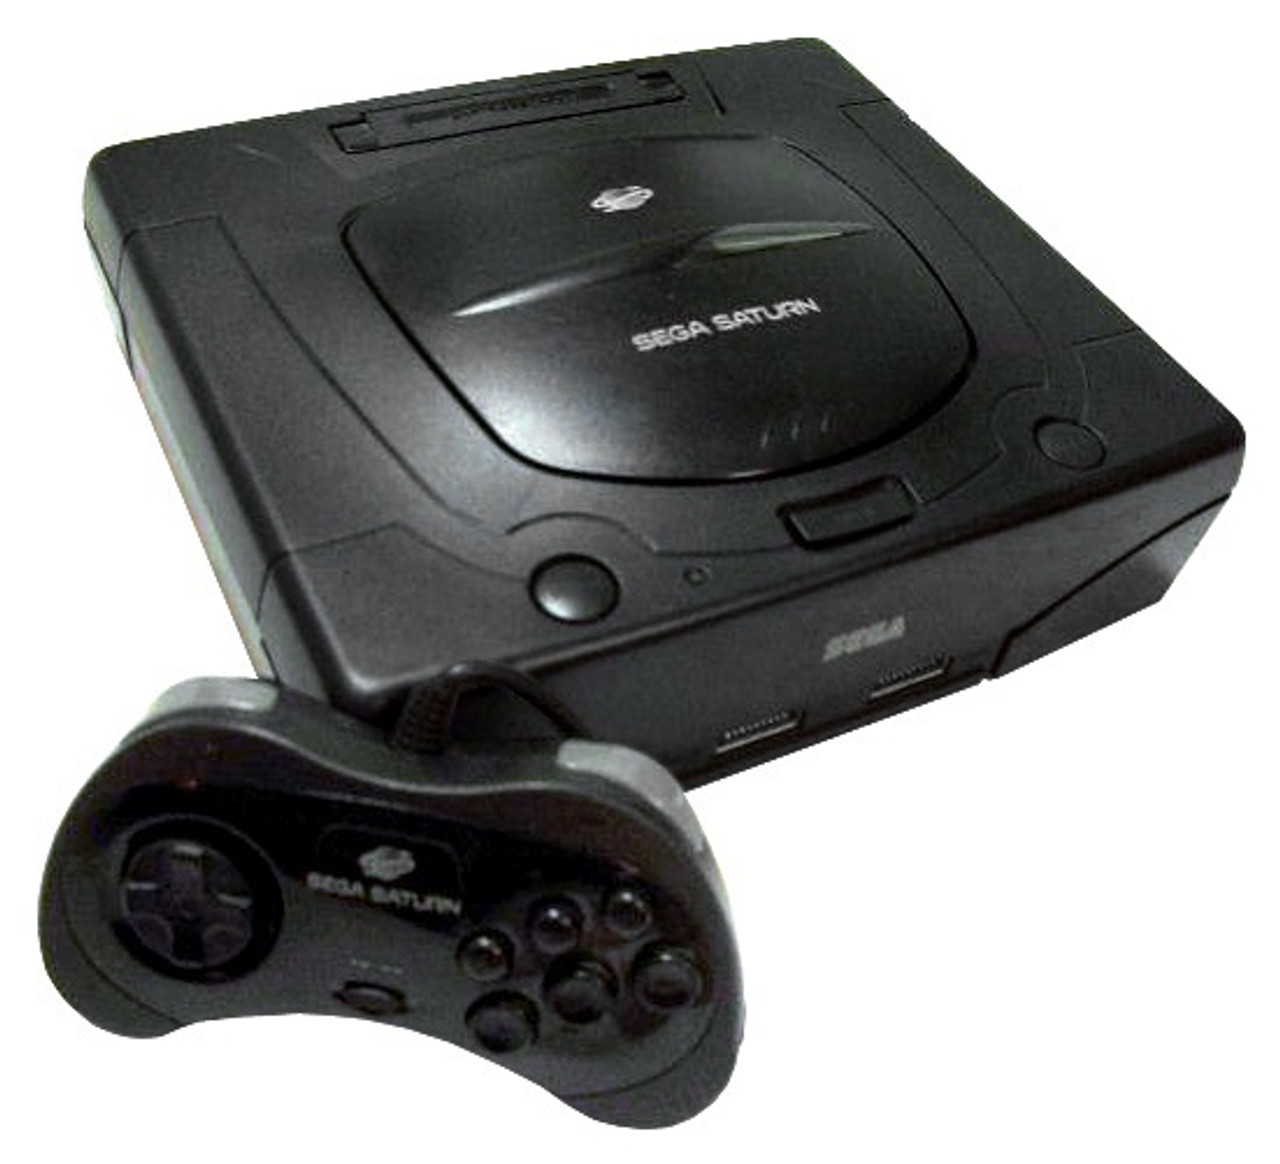 Sega Saturn Games And Accessories